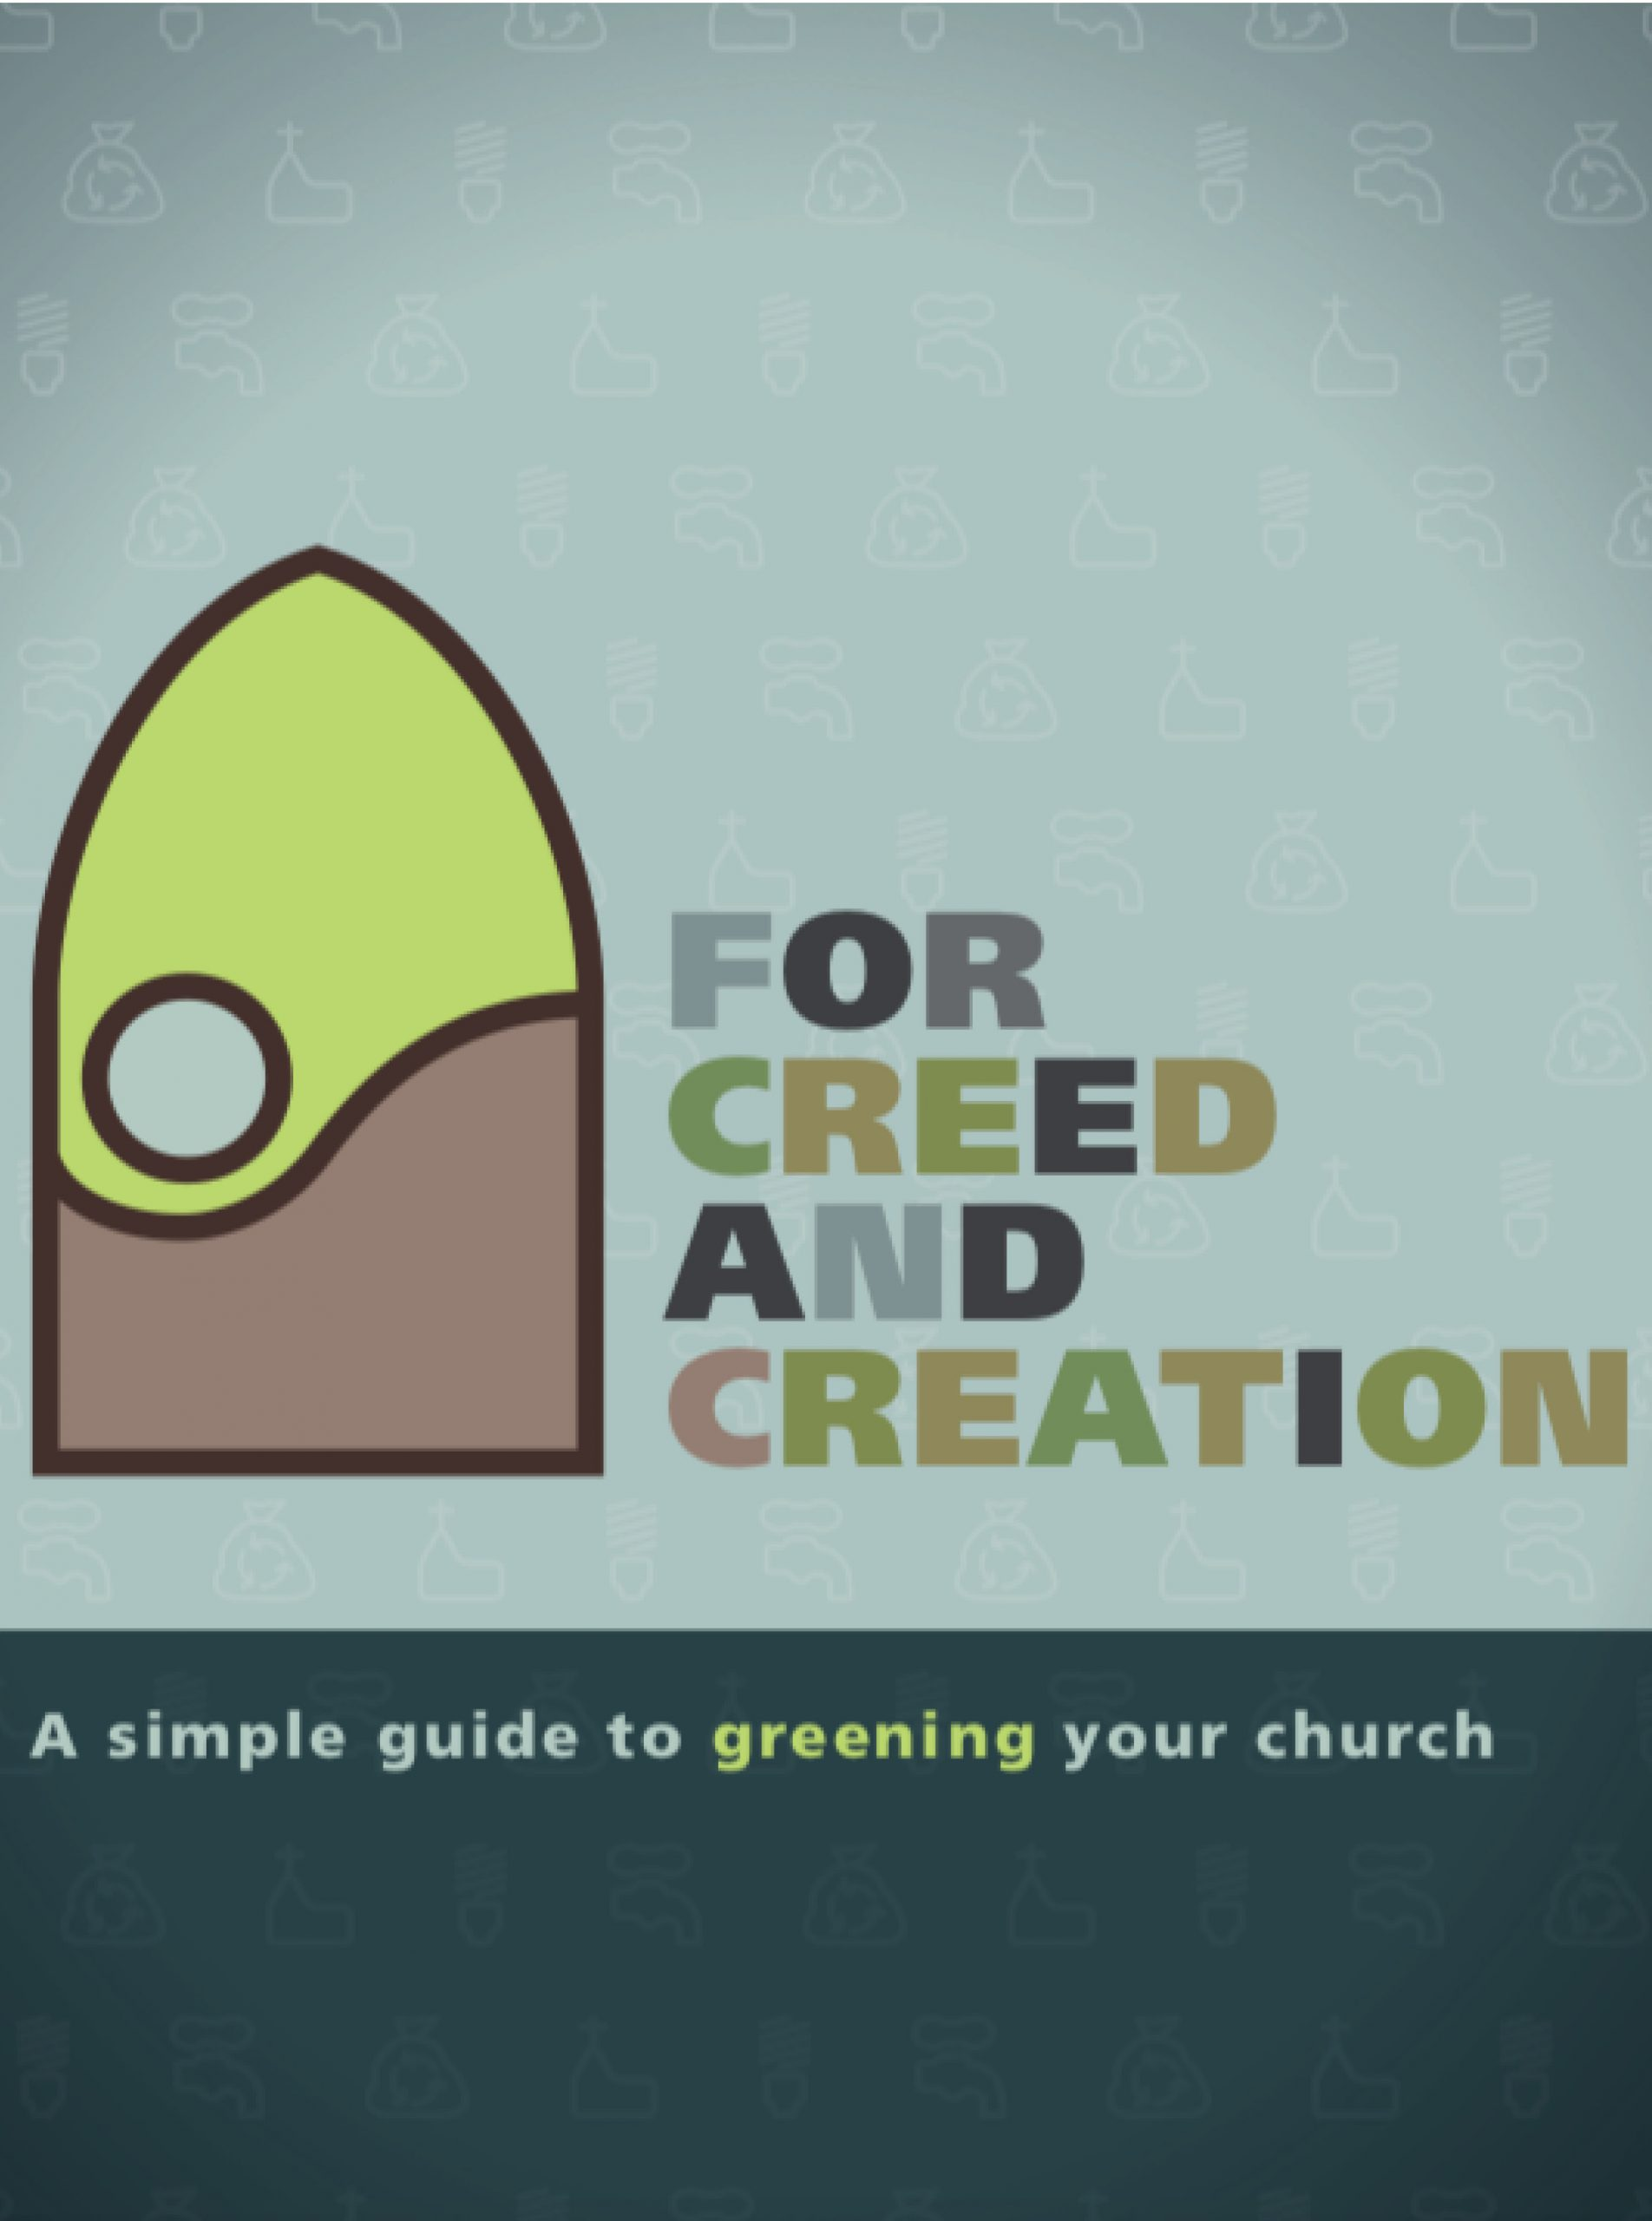 For creed and creation